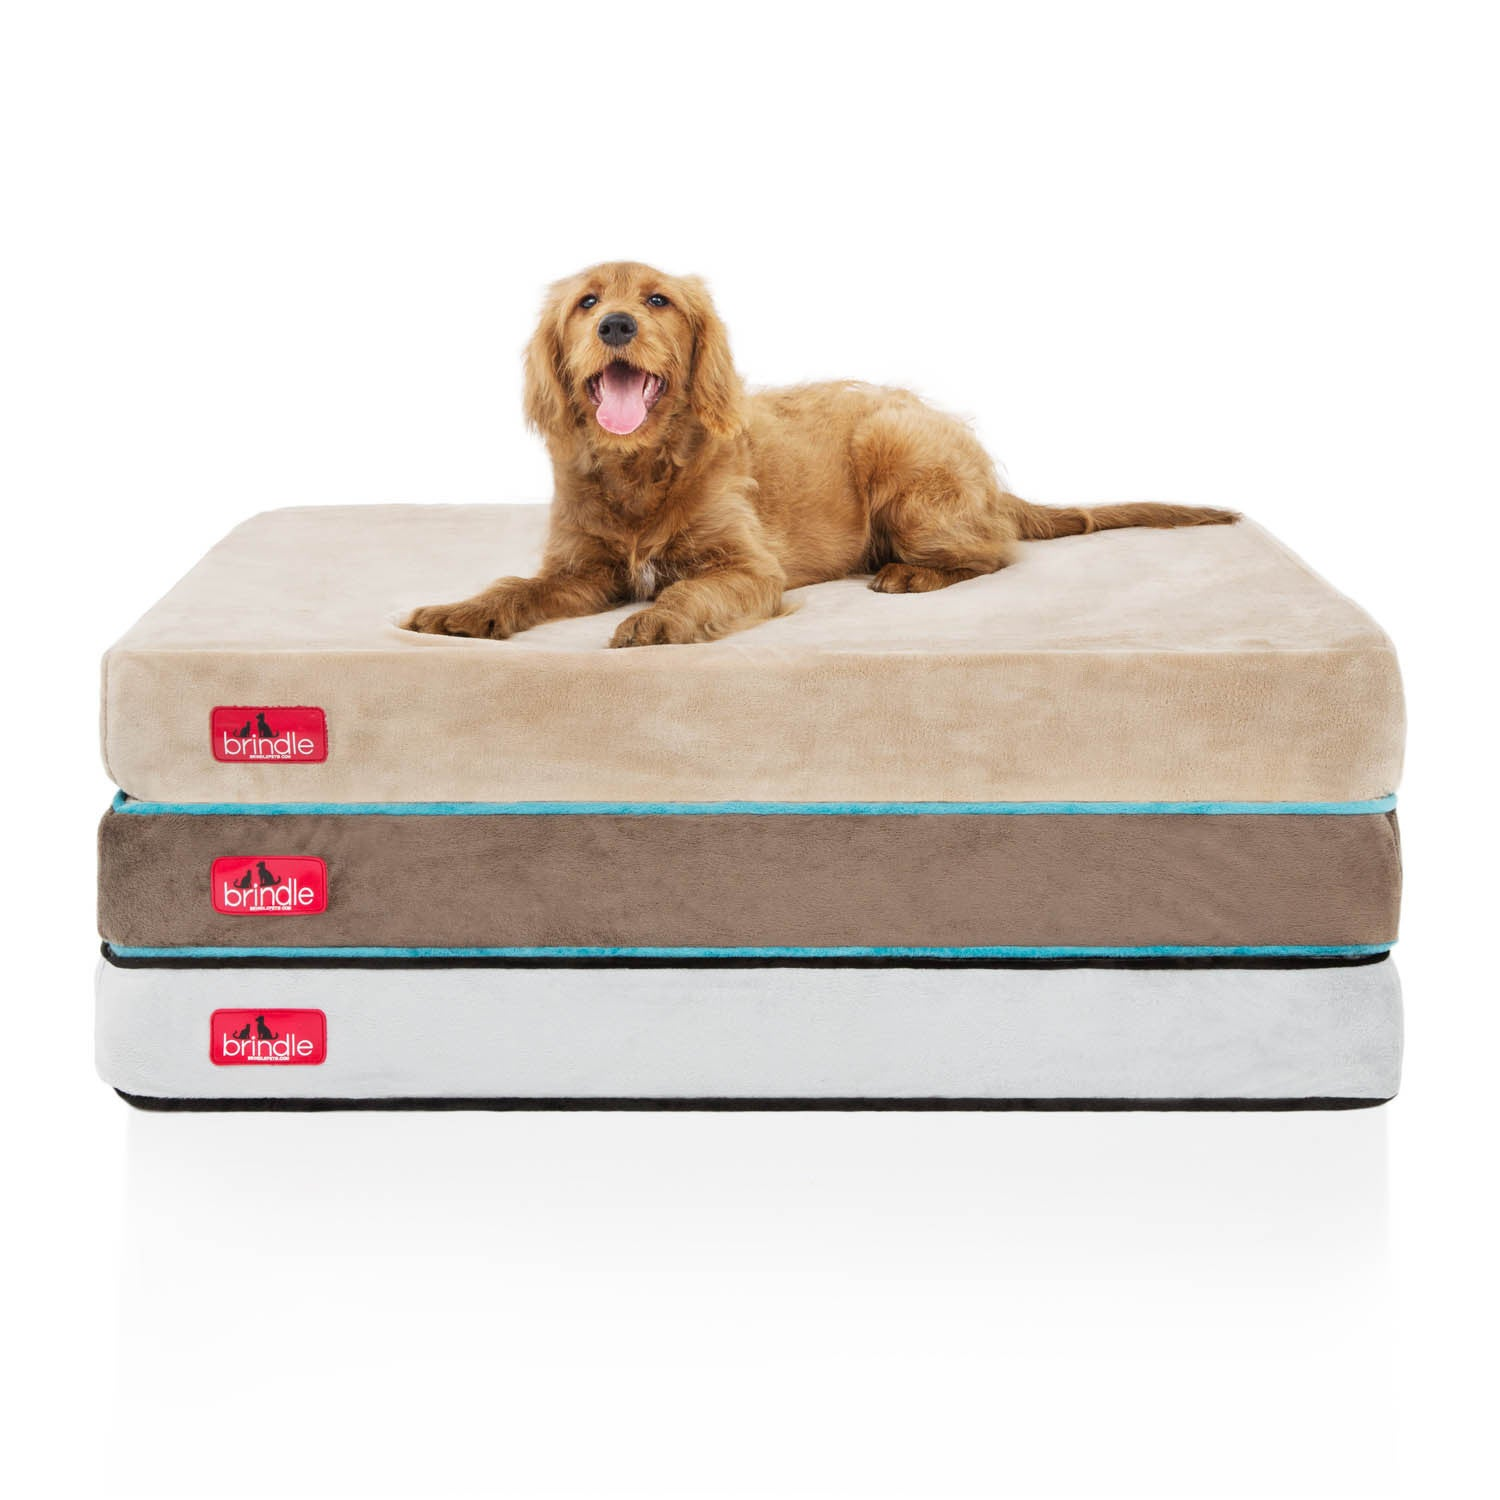 breed bed dogs large heated precision ga proof walmart at soft noble orthopedic tractor dog chew pet poochplanet extra sale pillow with costco petco beds along excellent on petsmart cheap gorgeous cat products supply reviews astonishing shop daydreamer home ebay